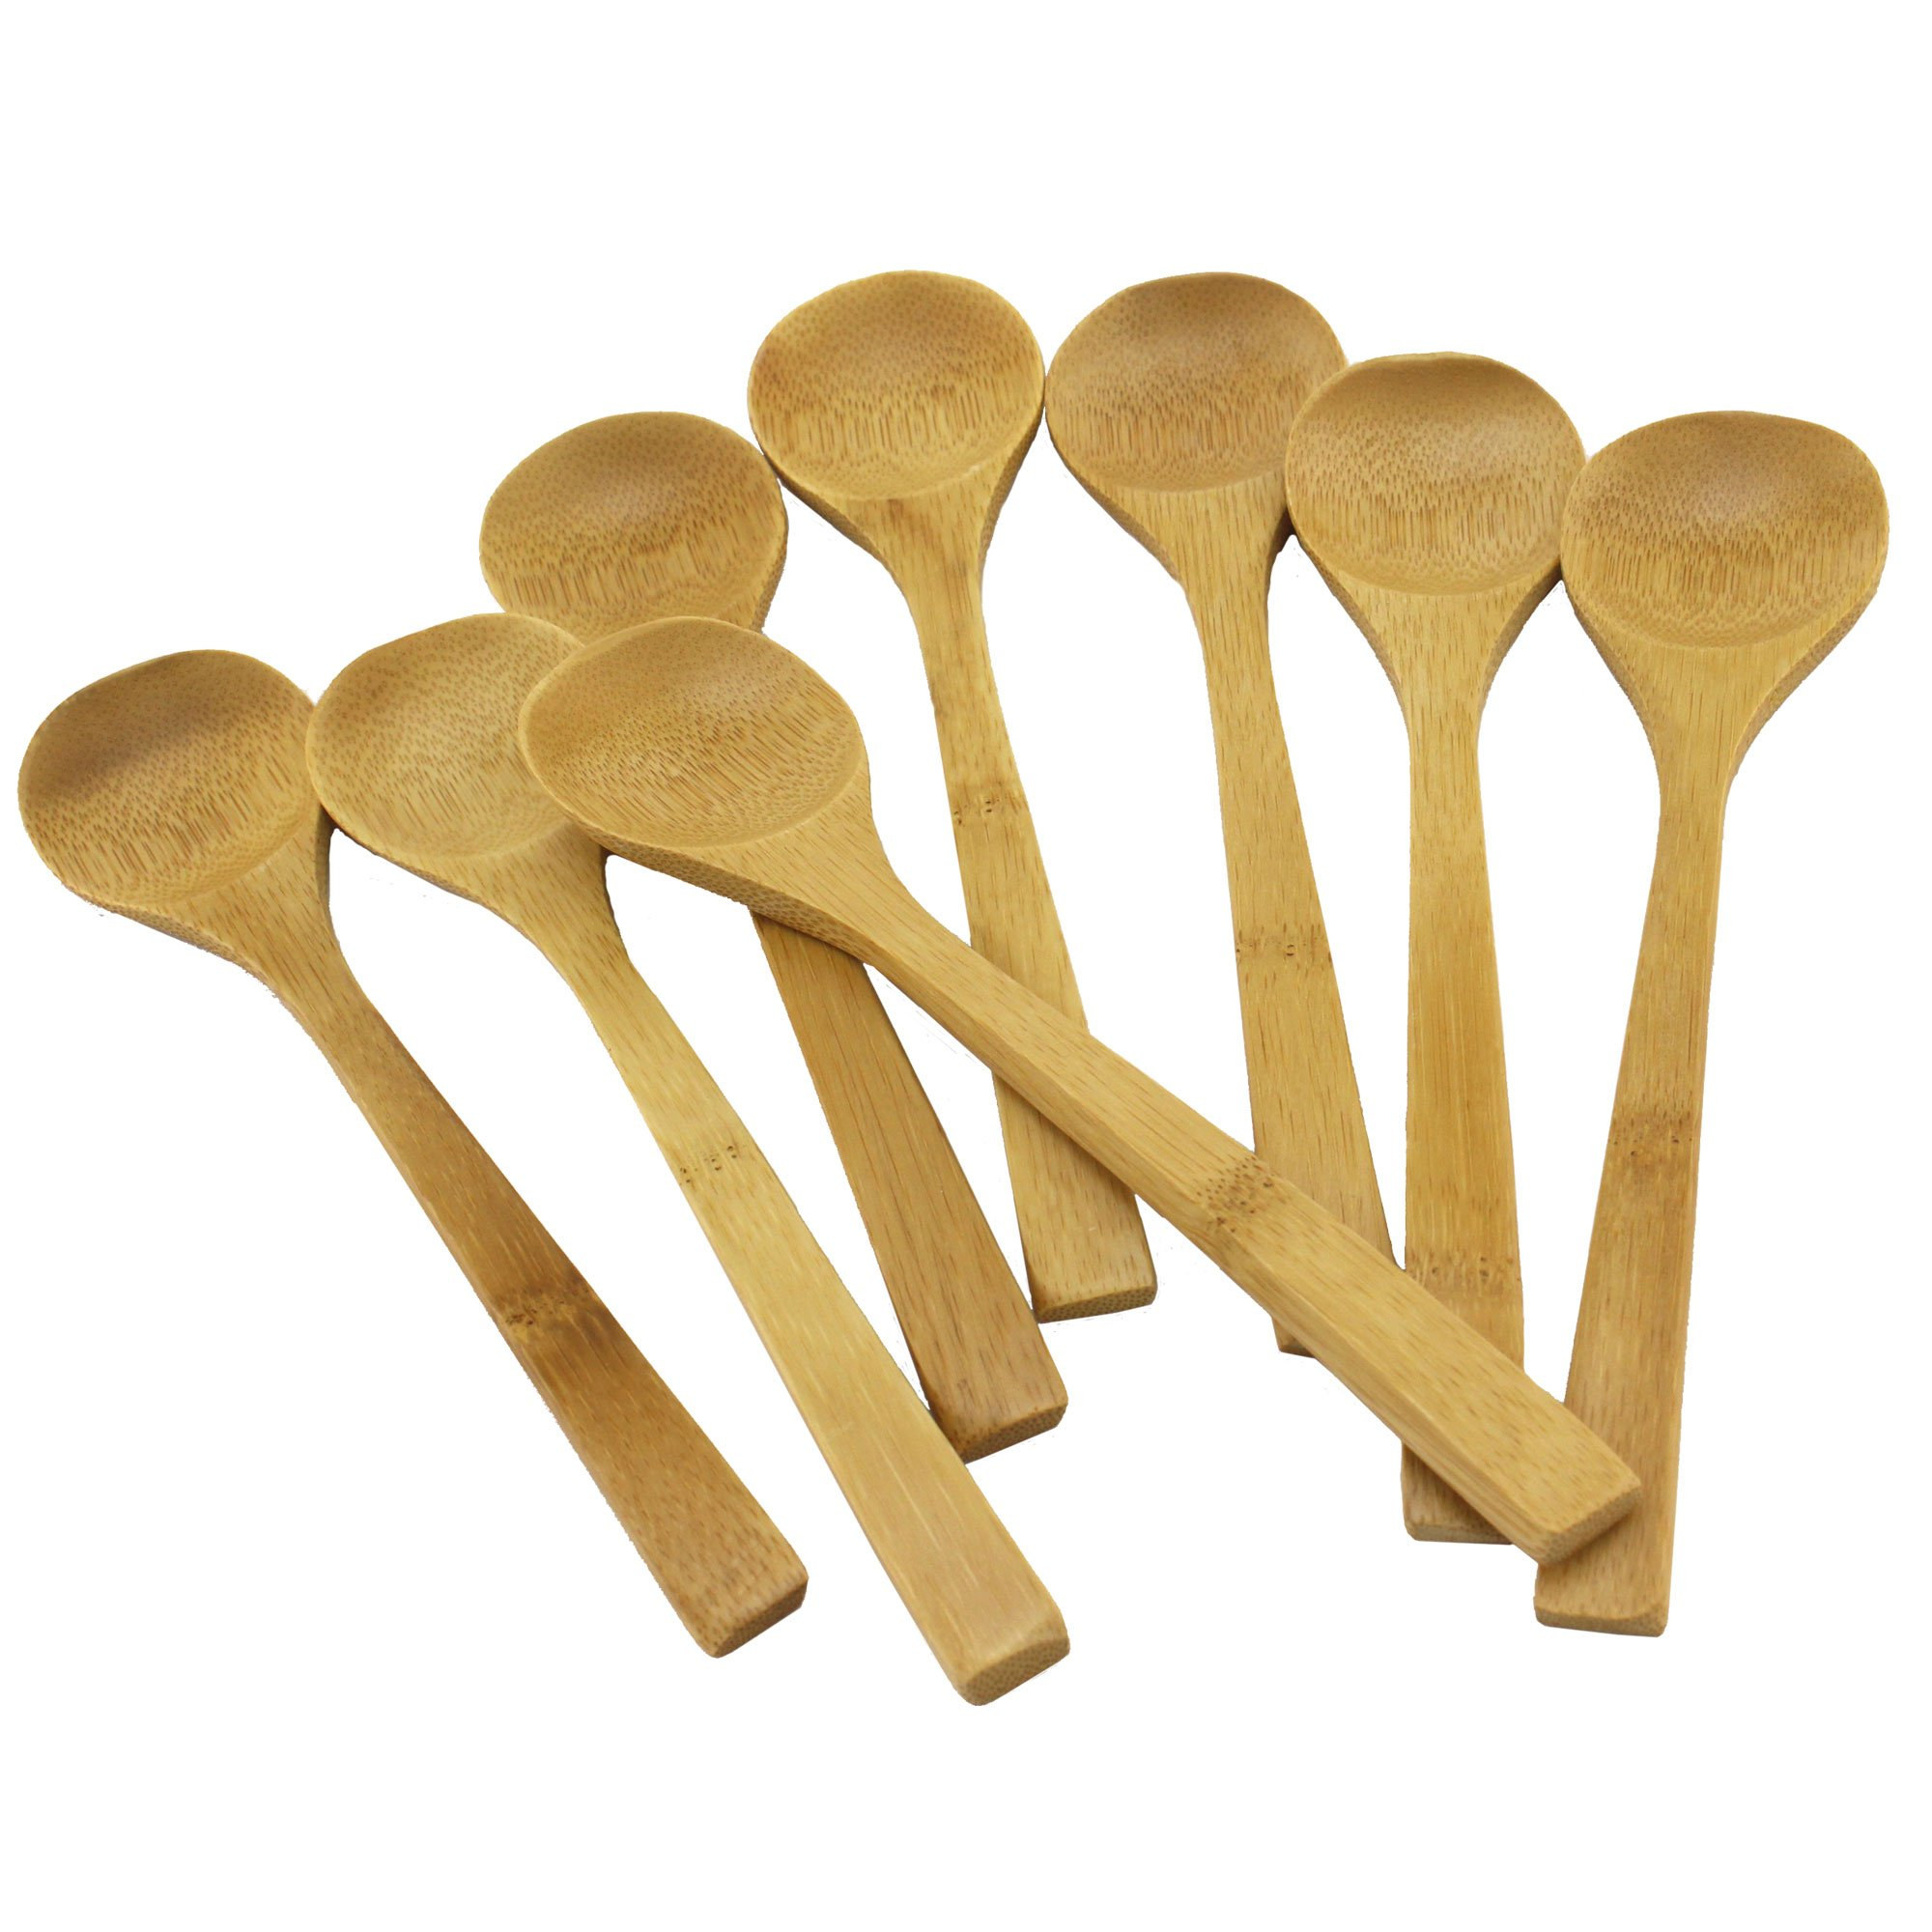 BambooMN Brand - Solid Bamboo Soup Spoon 8'' - 100 pcs by BambooMN